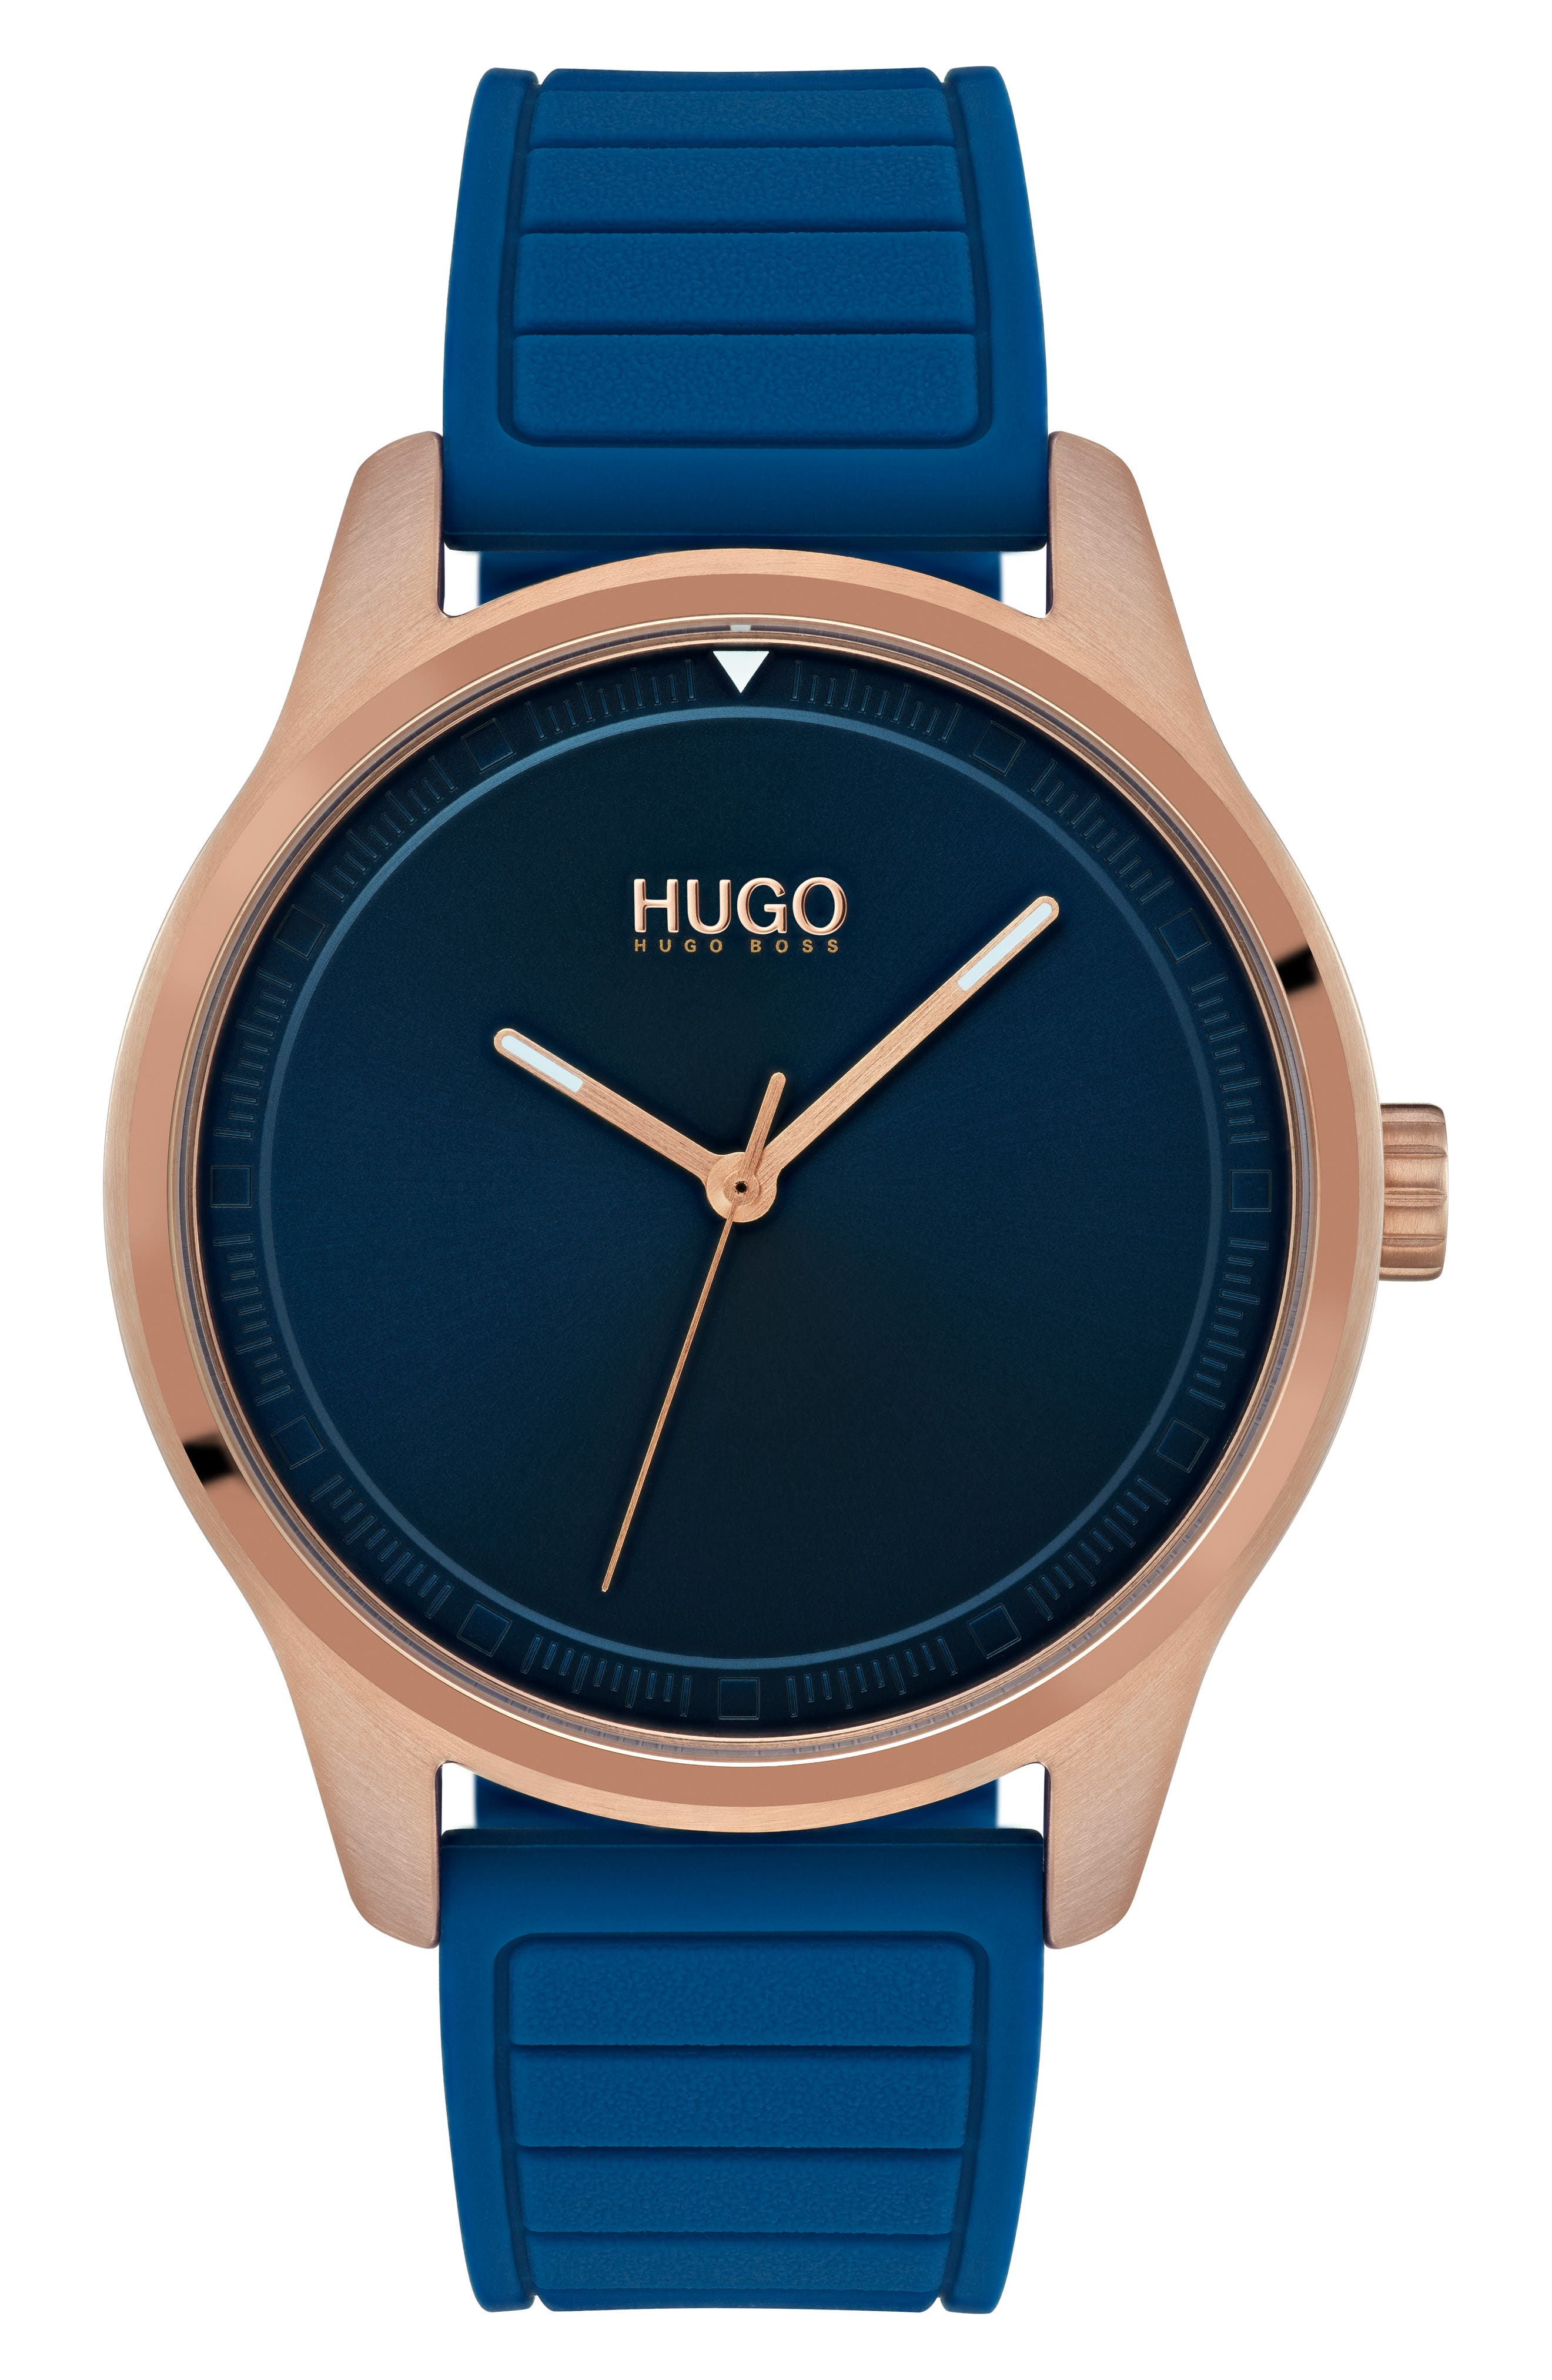 HUGO Silicone Strap Watch, 42Mm in Blue